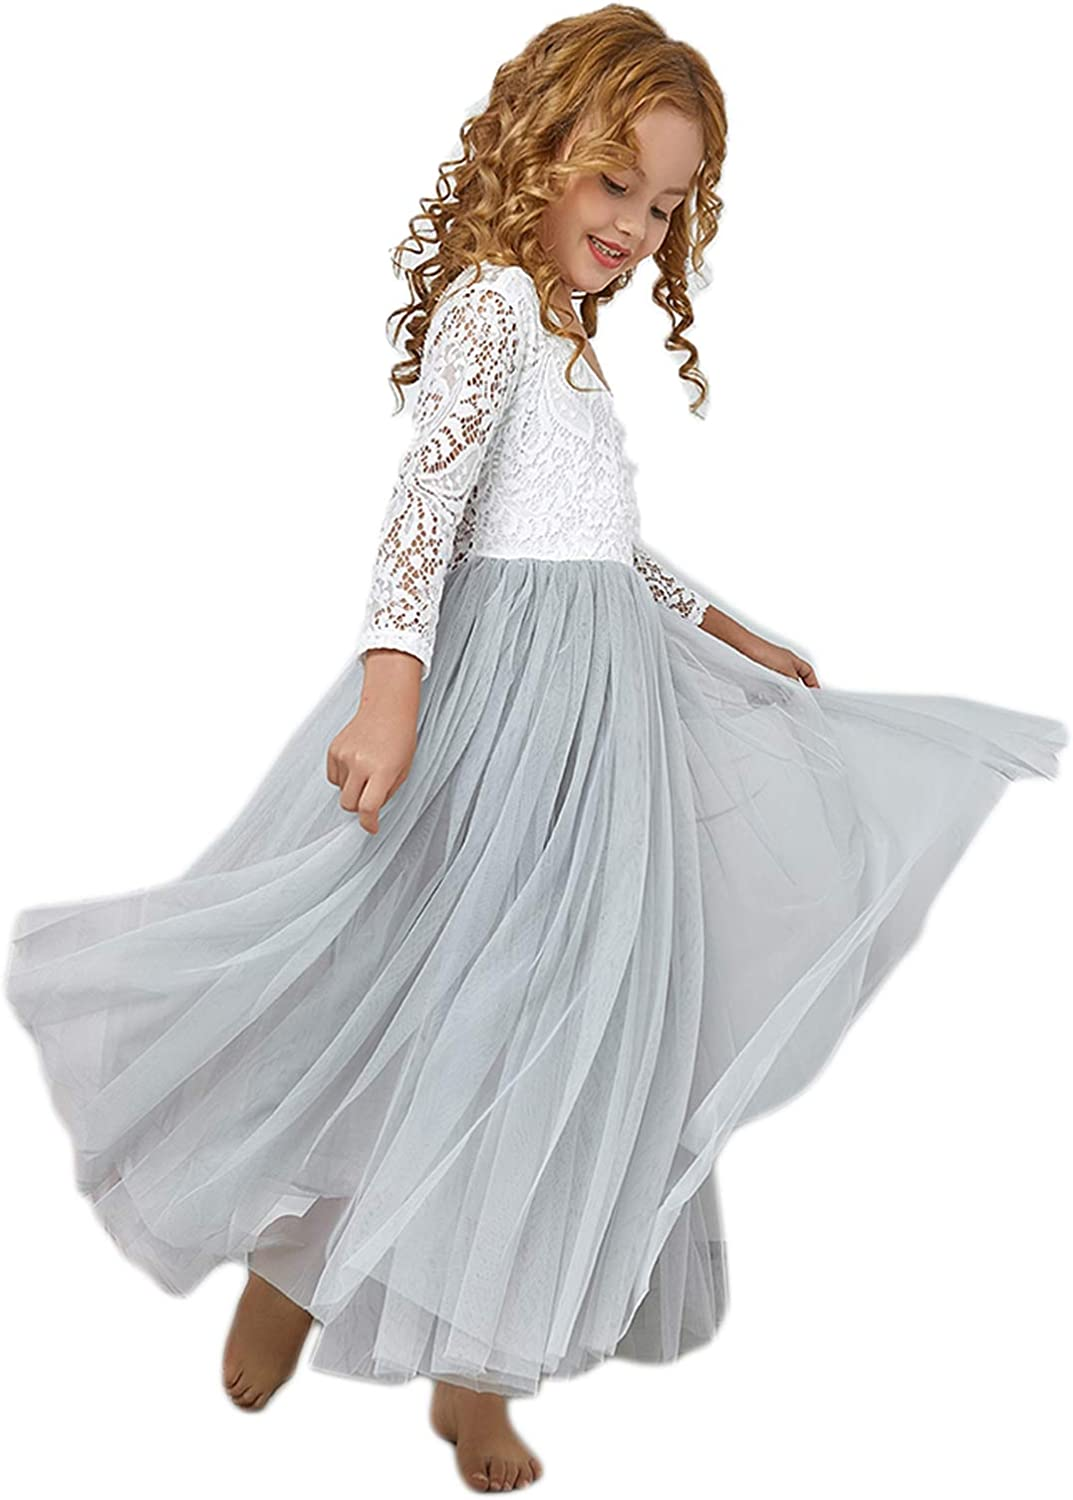 Cocoyeye Flower Girls Challenge the lowest Oakland Mall price of Japan Lace Sleeves Dresses E Toddler Wedding for